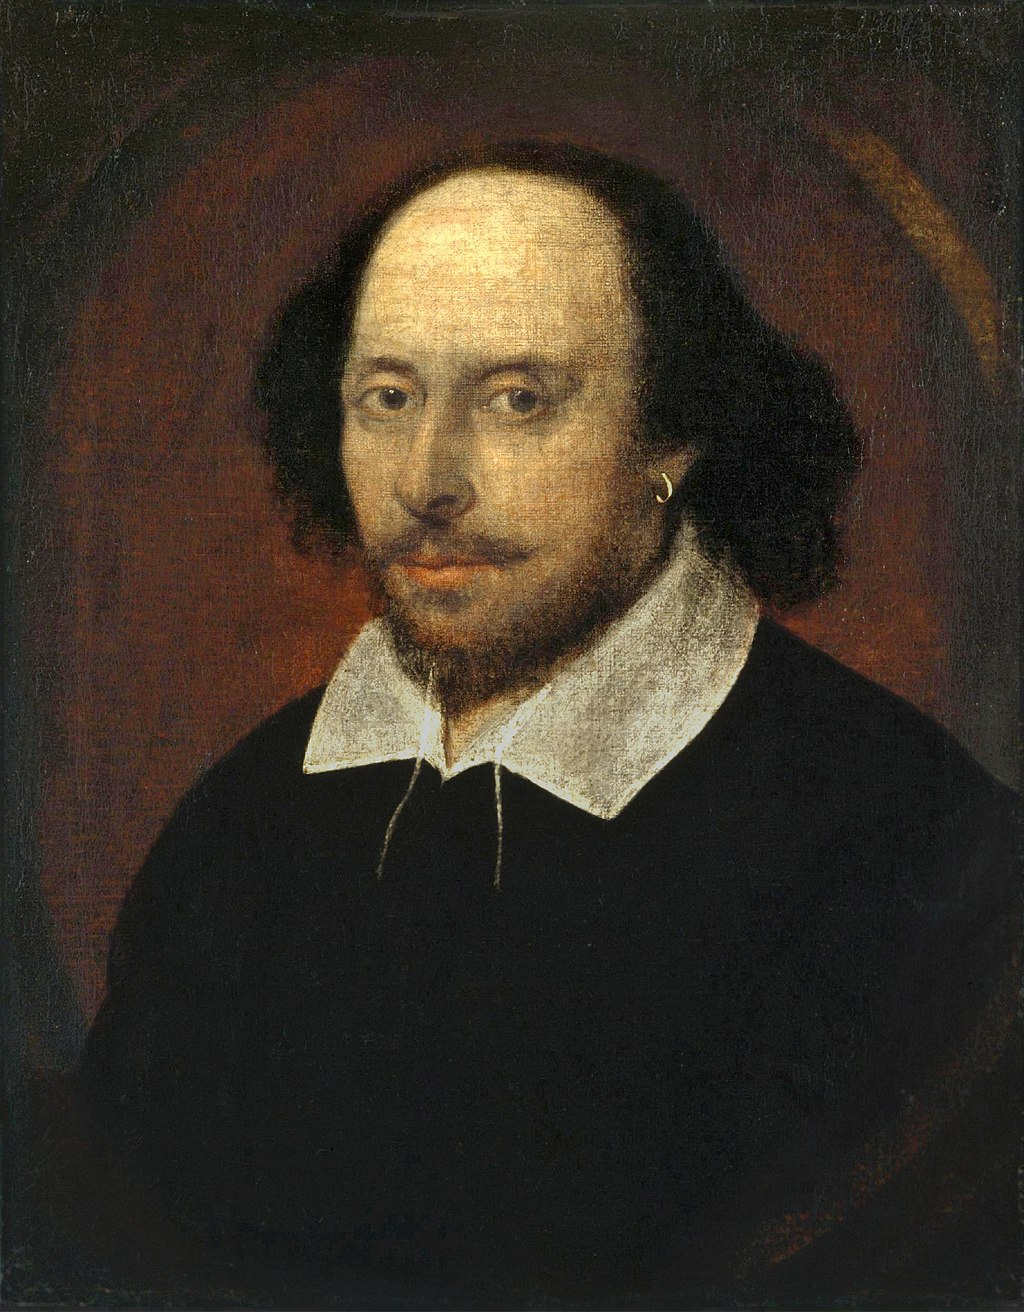 A painting of William Shakespeare. Painting usually attributed to John Taylor.